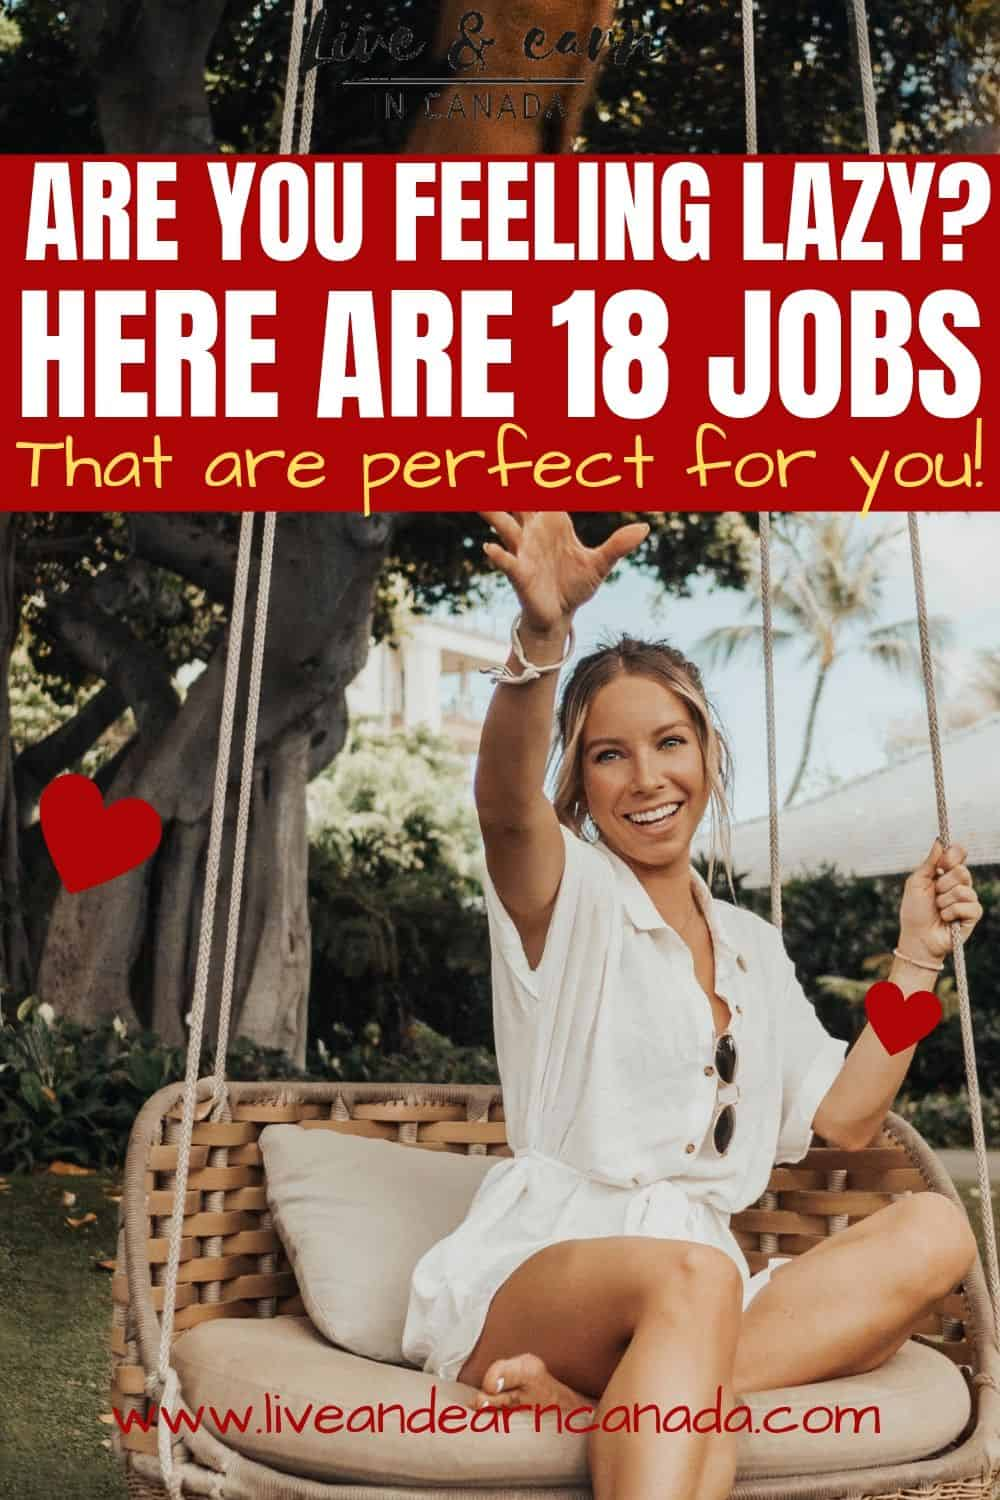 Here are a few work jobs that are perfect for lazy people. If you are looking for easy jobs that lazy people can do from home, this list is perfect for you. These jobs can make you up $2000.00 especially if you are finding it hard to find the best jobs for lazy people, read this #lazypeople #workfromhome #SAHM #Makemoneyonline